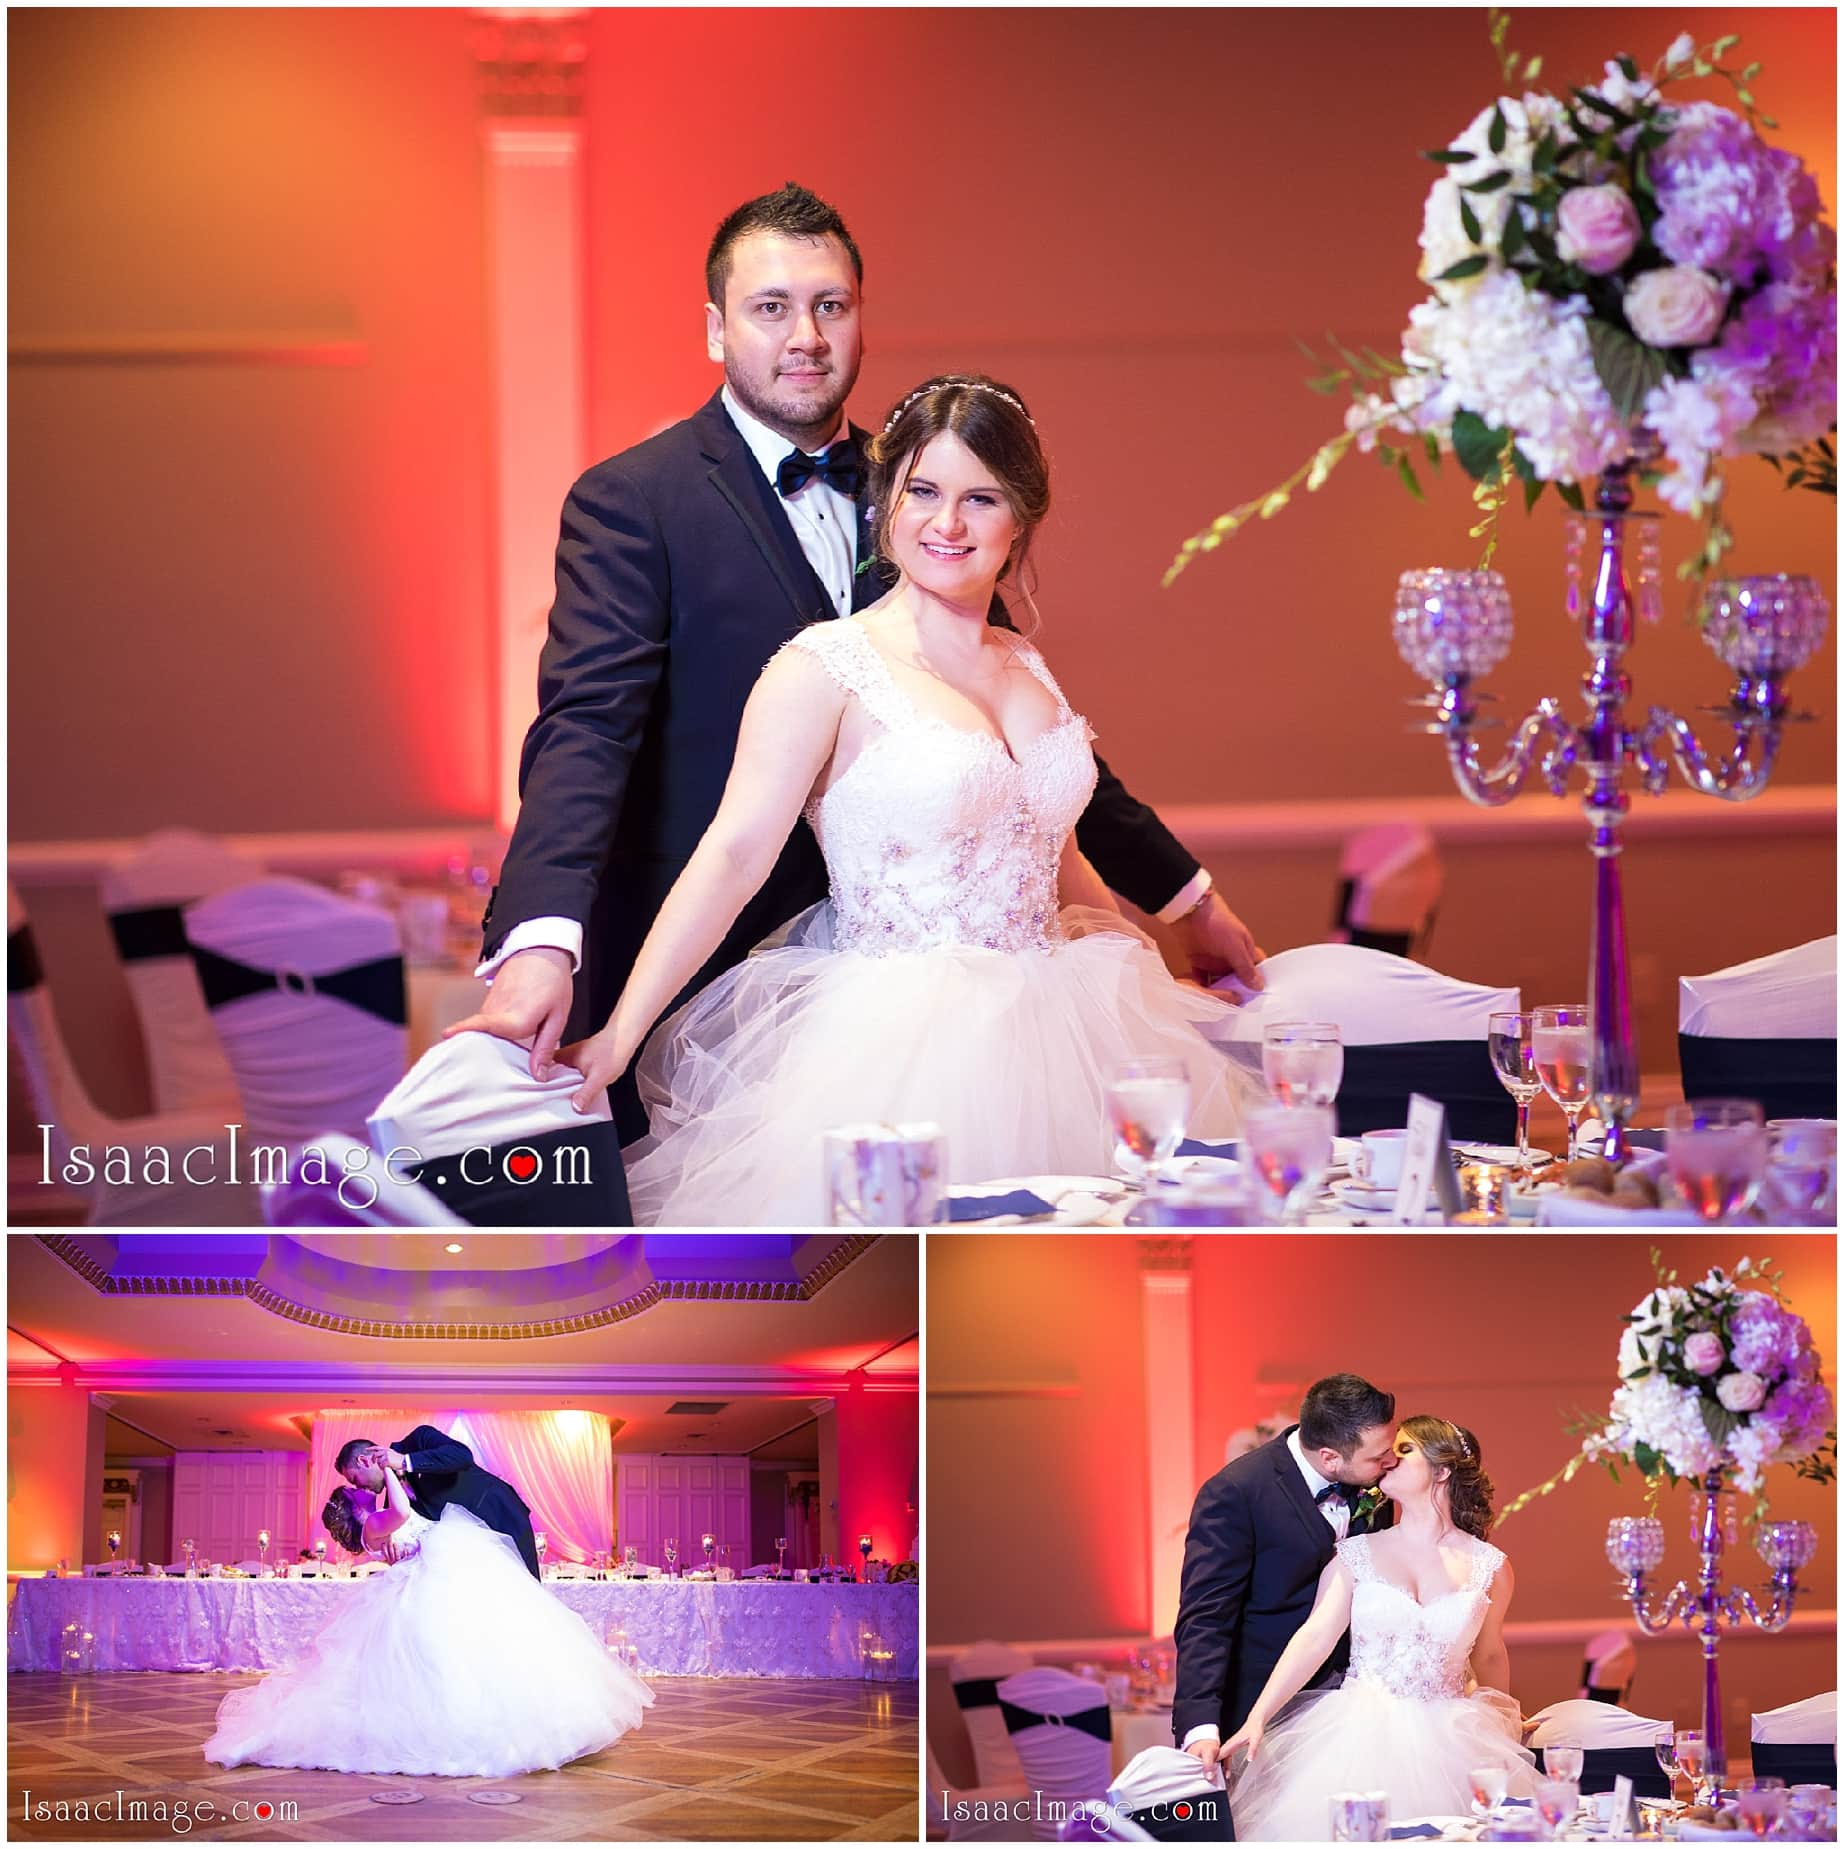 Queens Landing Hotel Wedding Niagara On The Lake Ian and Sasha_0815.jpg